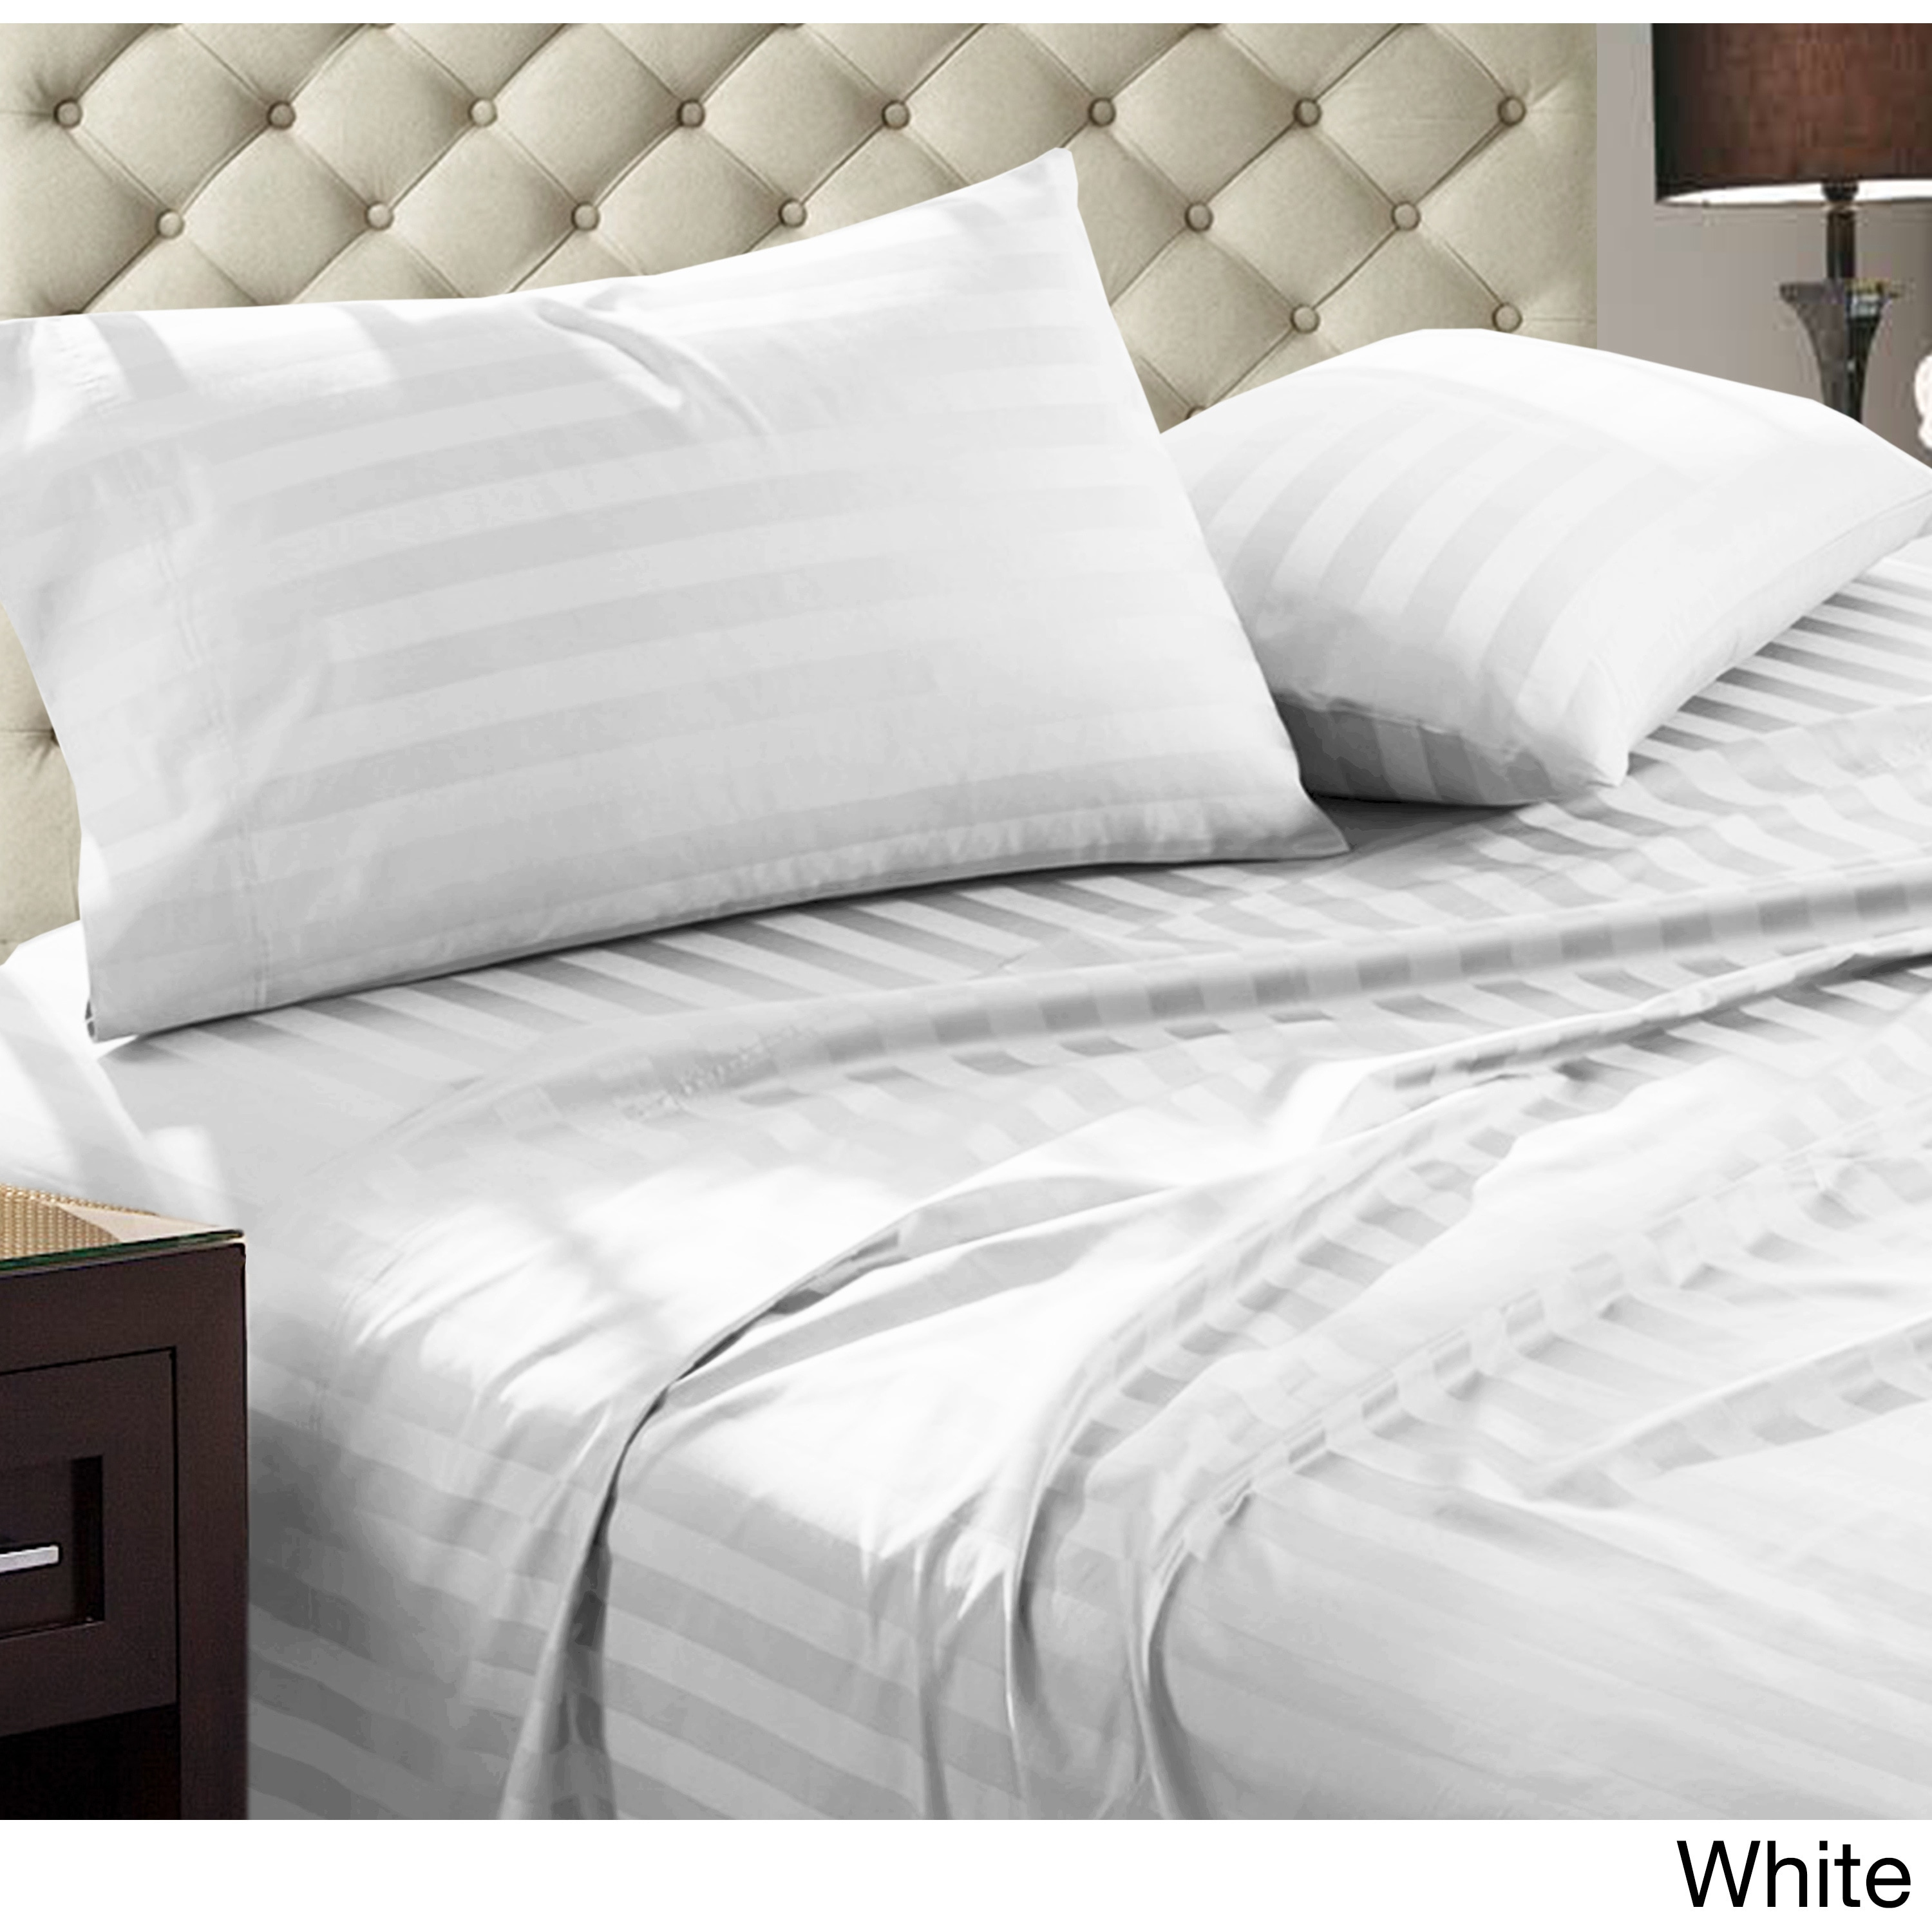 New Bedding Collection 1000TC Egyptian Cotton All Size Strip Pattern Select Item